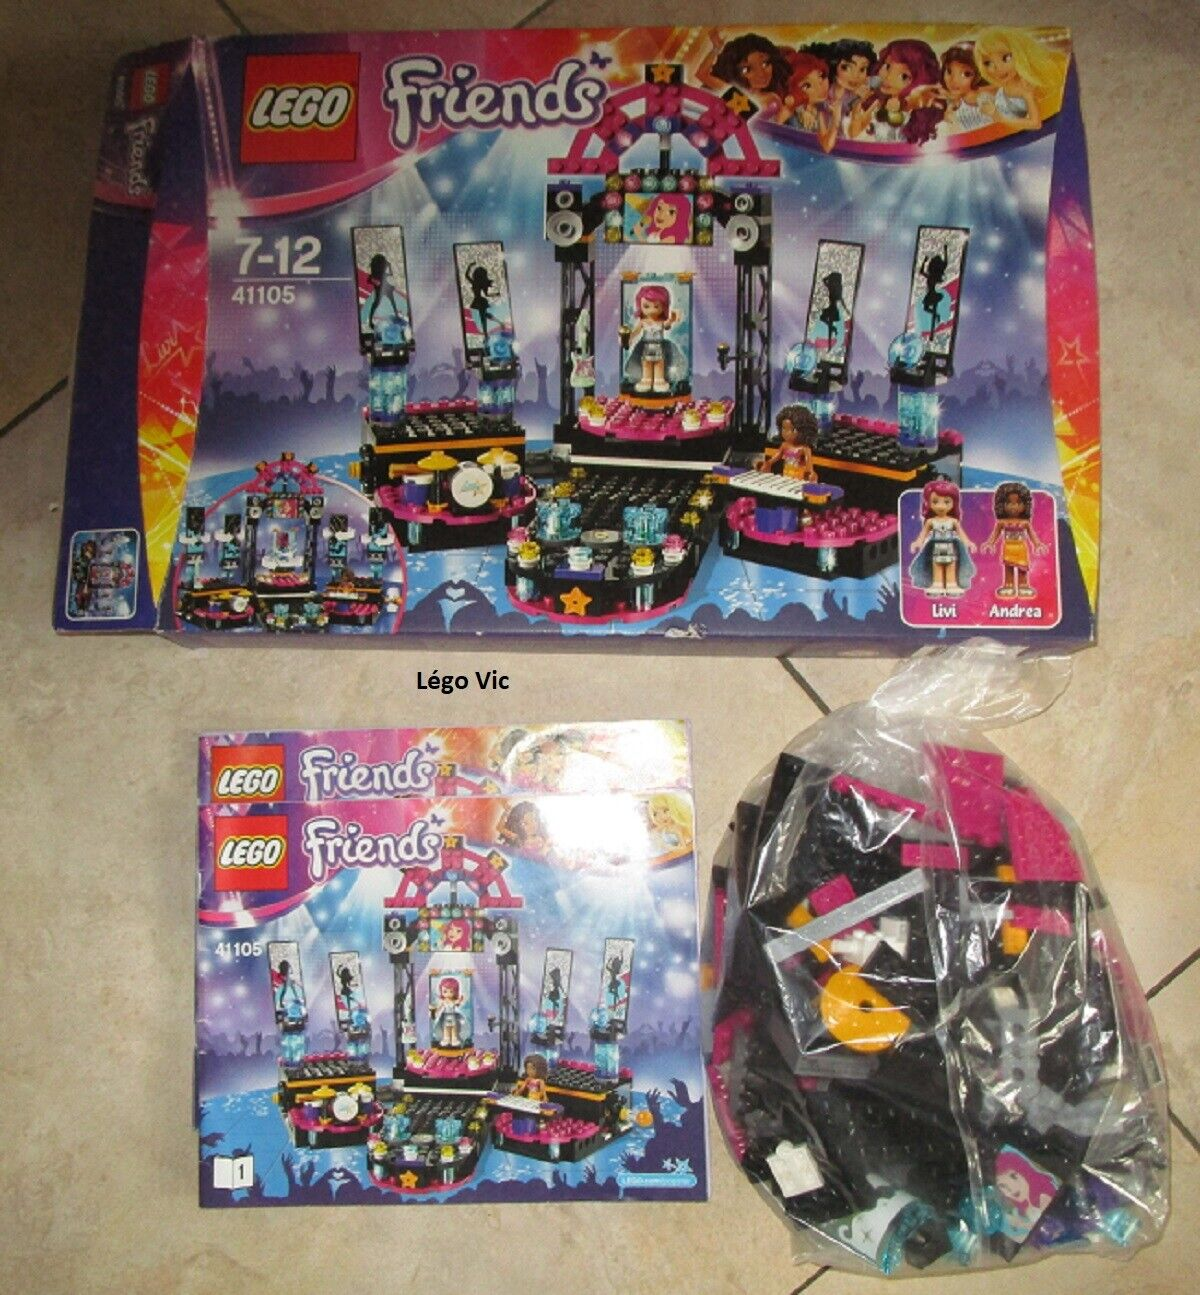 Lego 41105 Friends Pop Star Show Stage  Notice  Boite CNB20